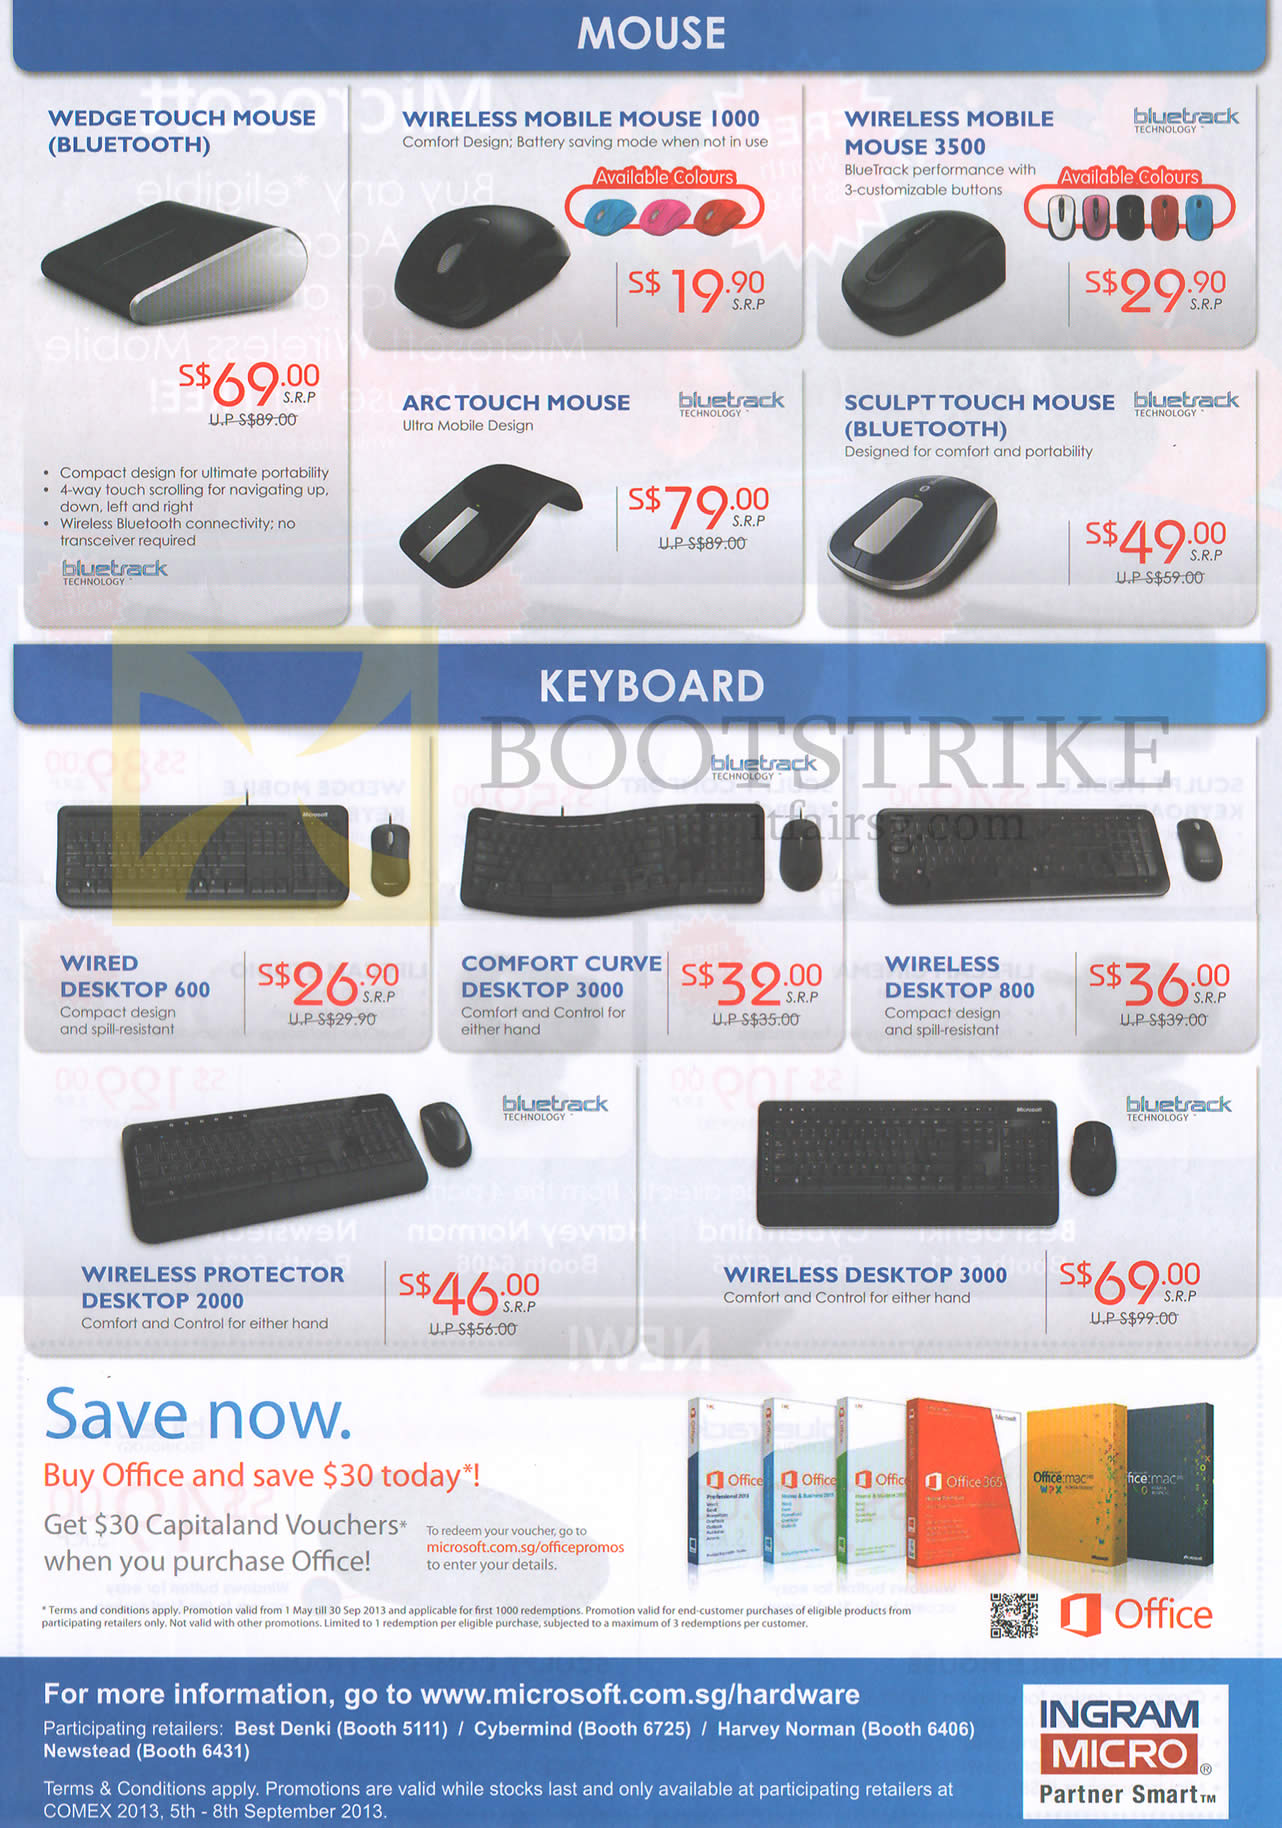 COMEX 2013 price list image brochure of Microsoft Mouse Wedge Tough, Mobile Mouse 1000, 3500, Arc Touch, Sculpt, Keyboard Wired Desktop 600, Comfort Curve, Protector, Office